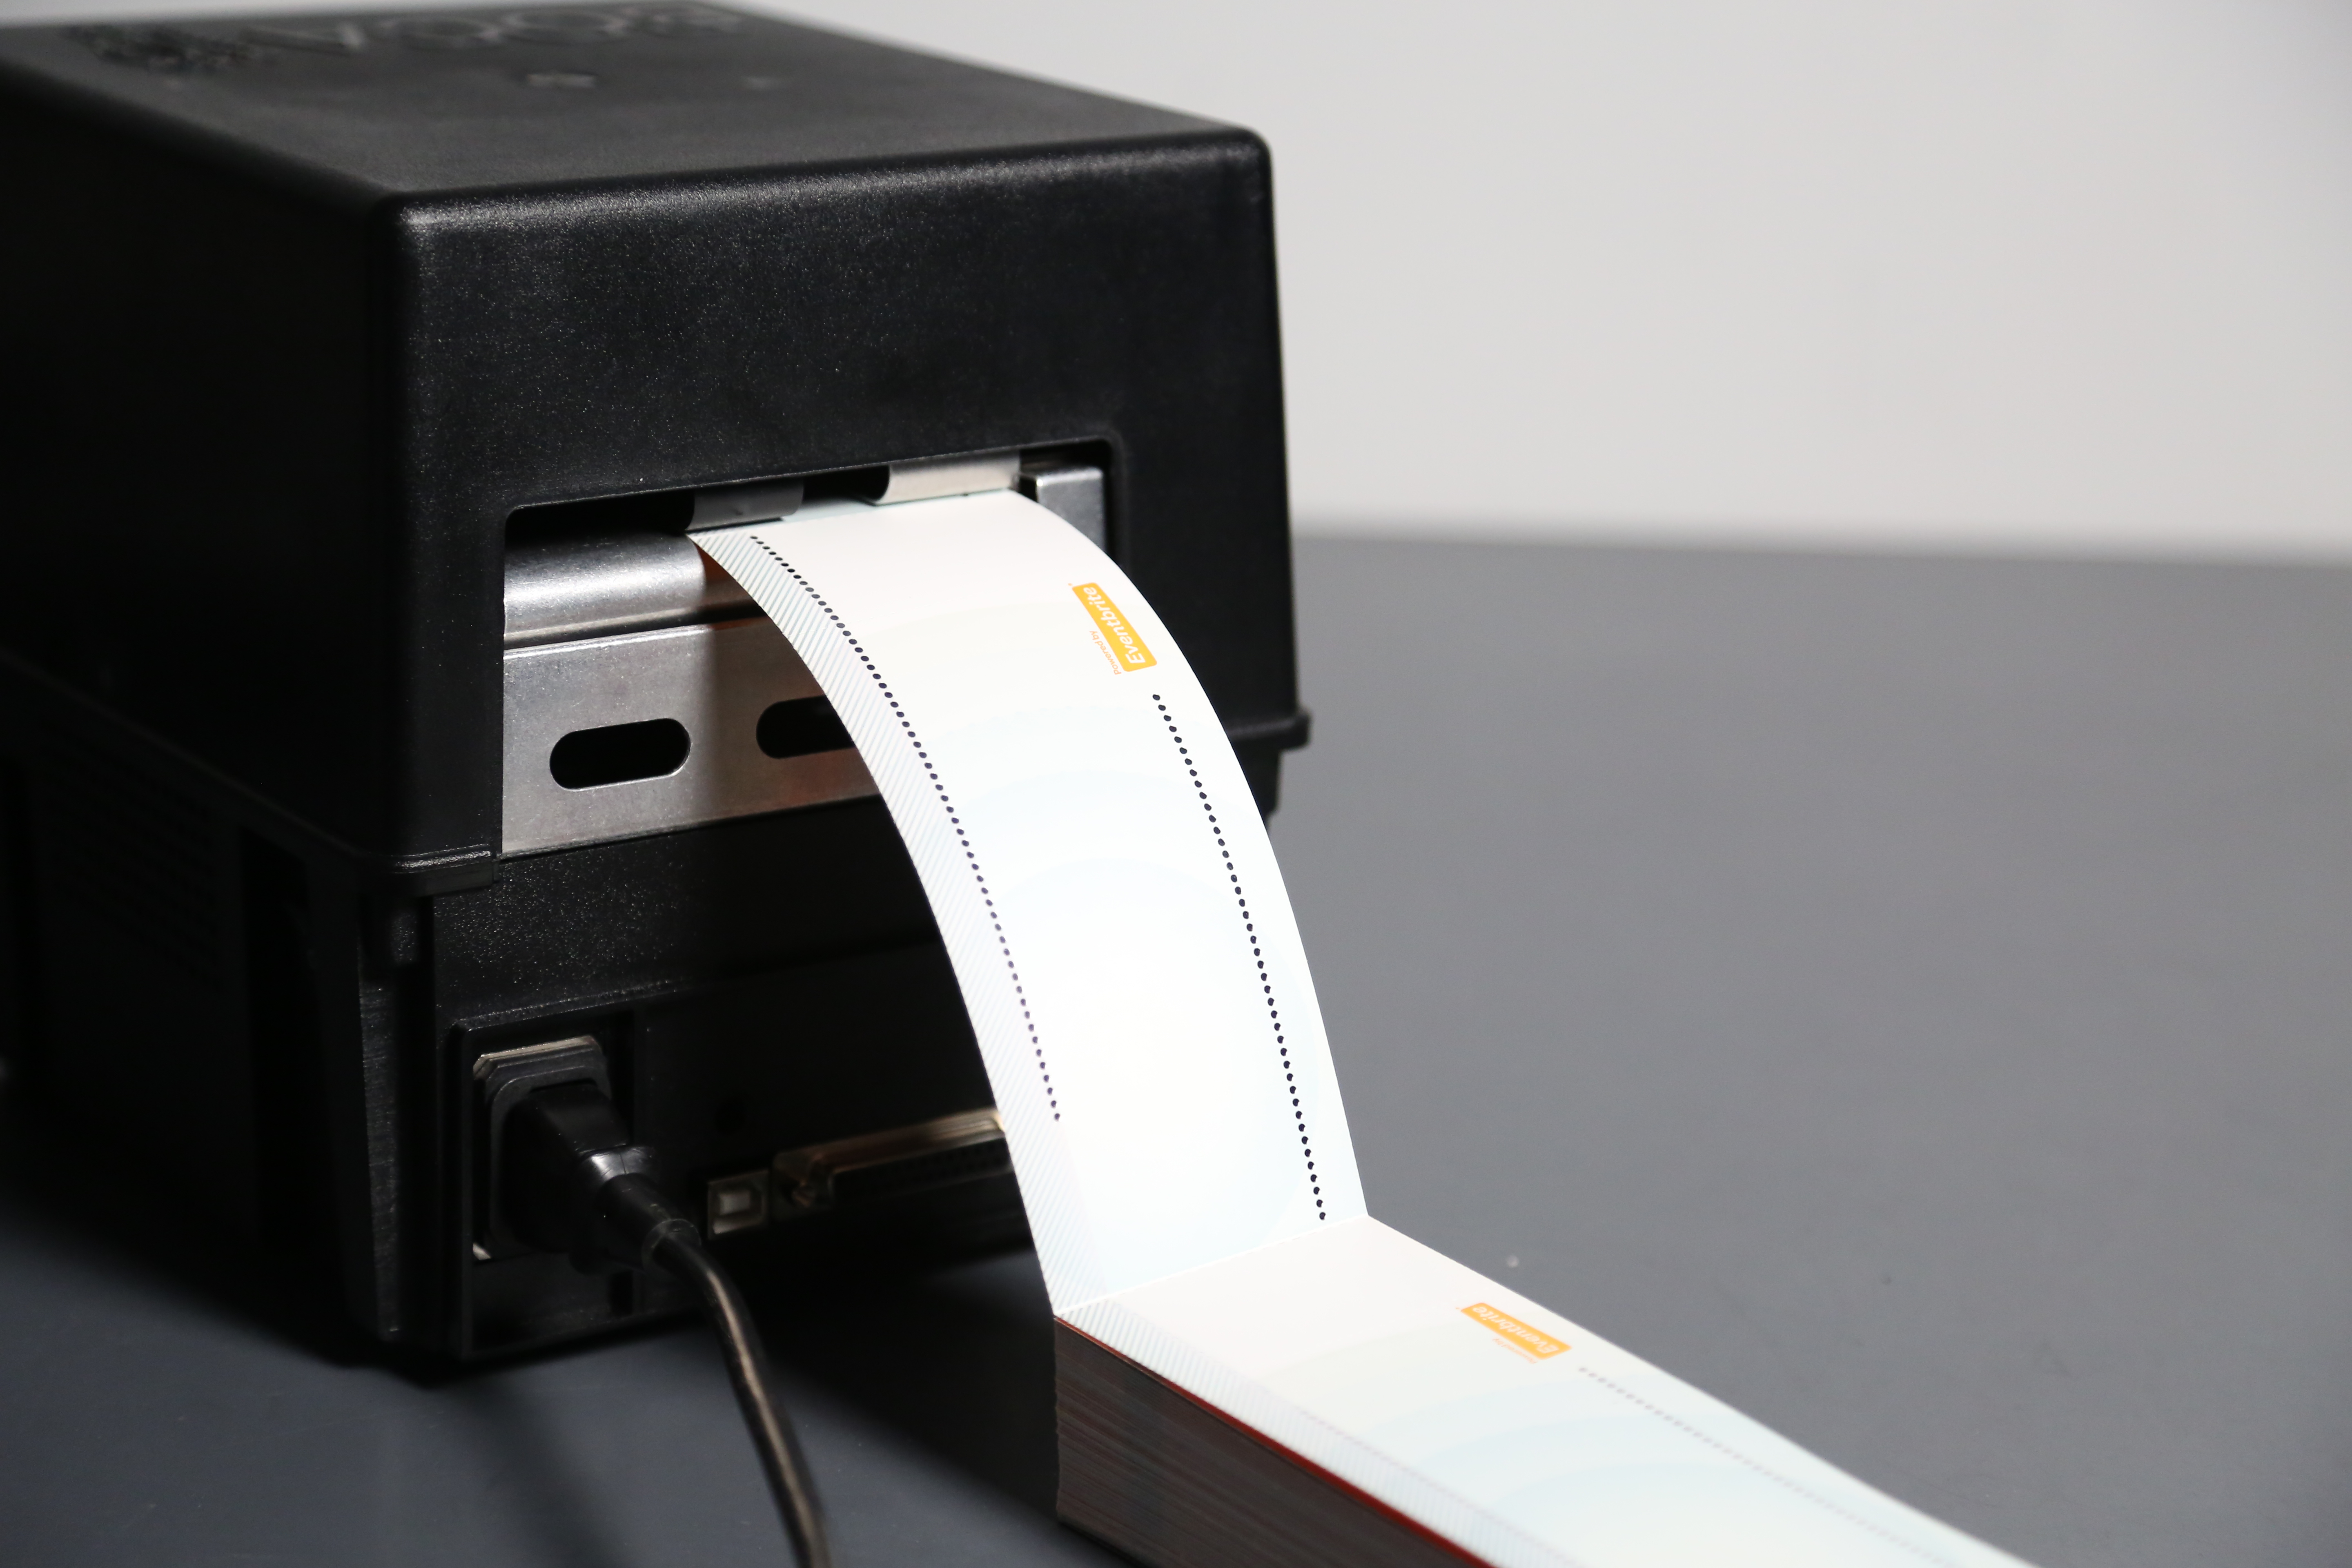 How to set up a Boca printer and print tickets with Eventbrite